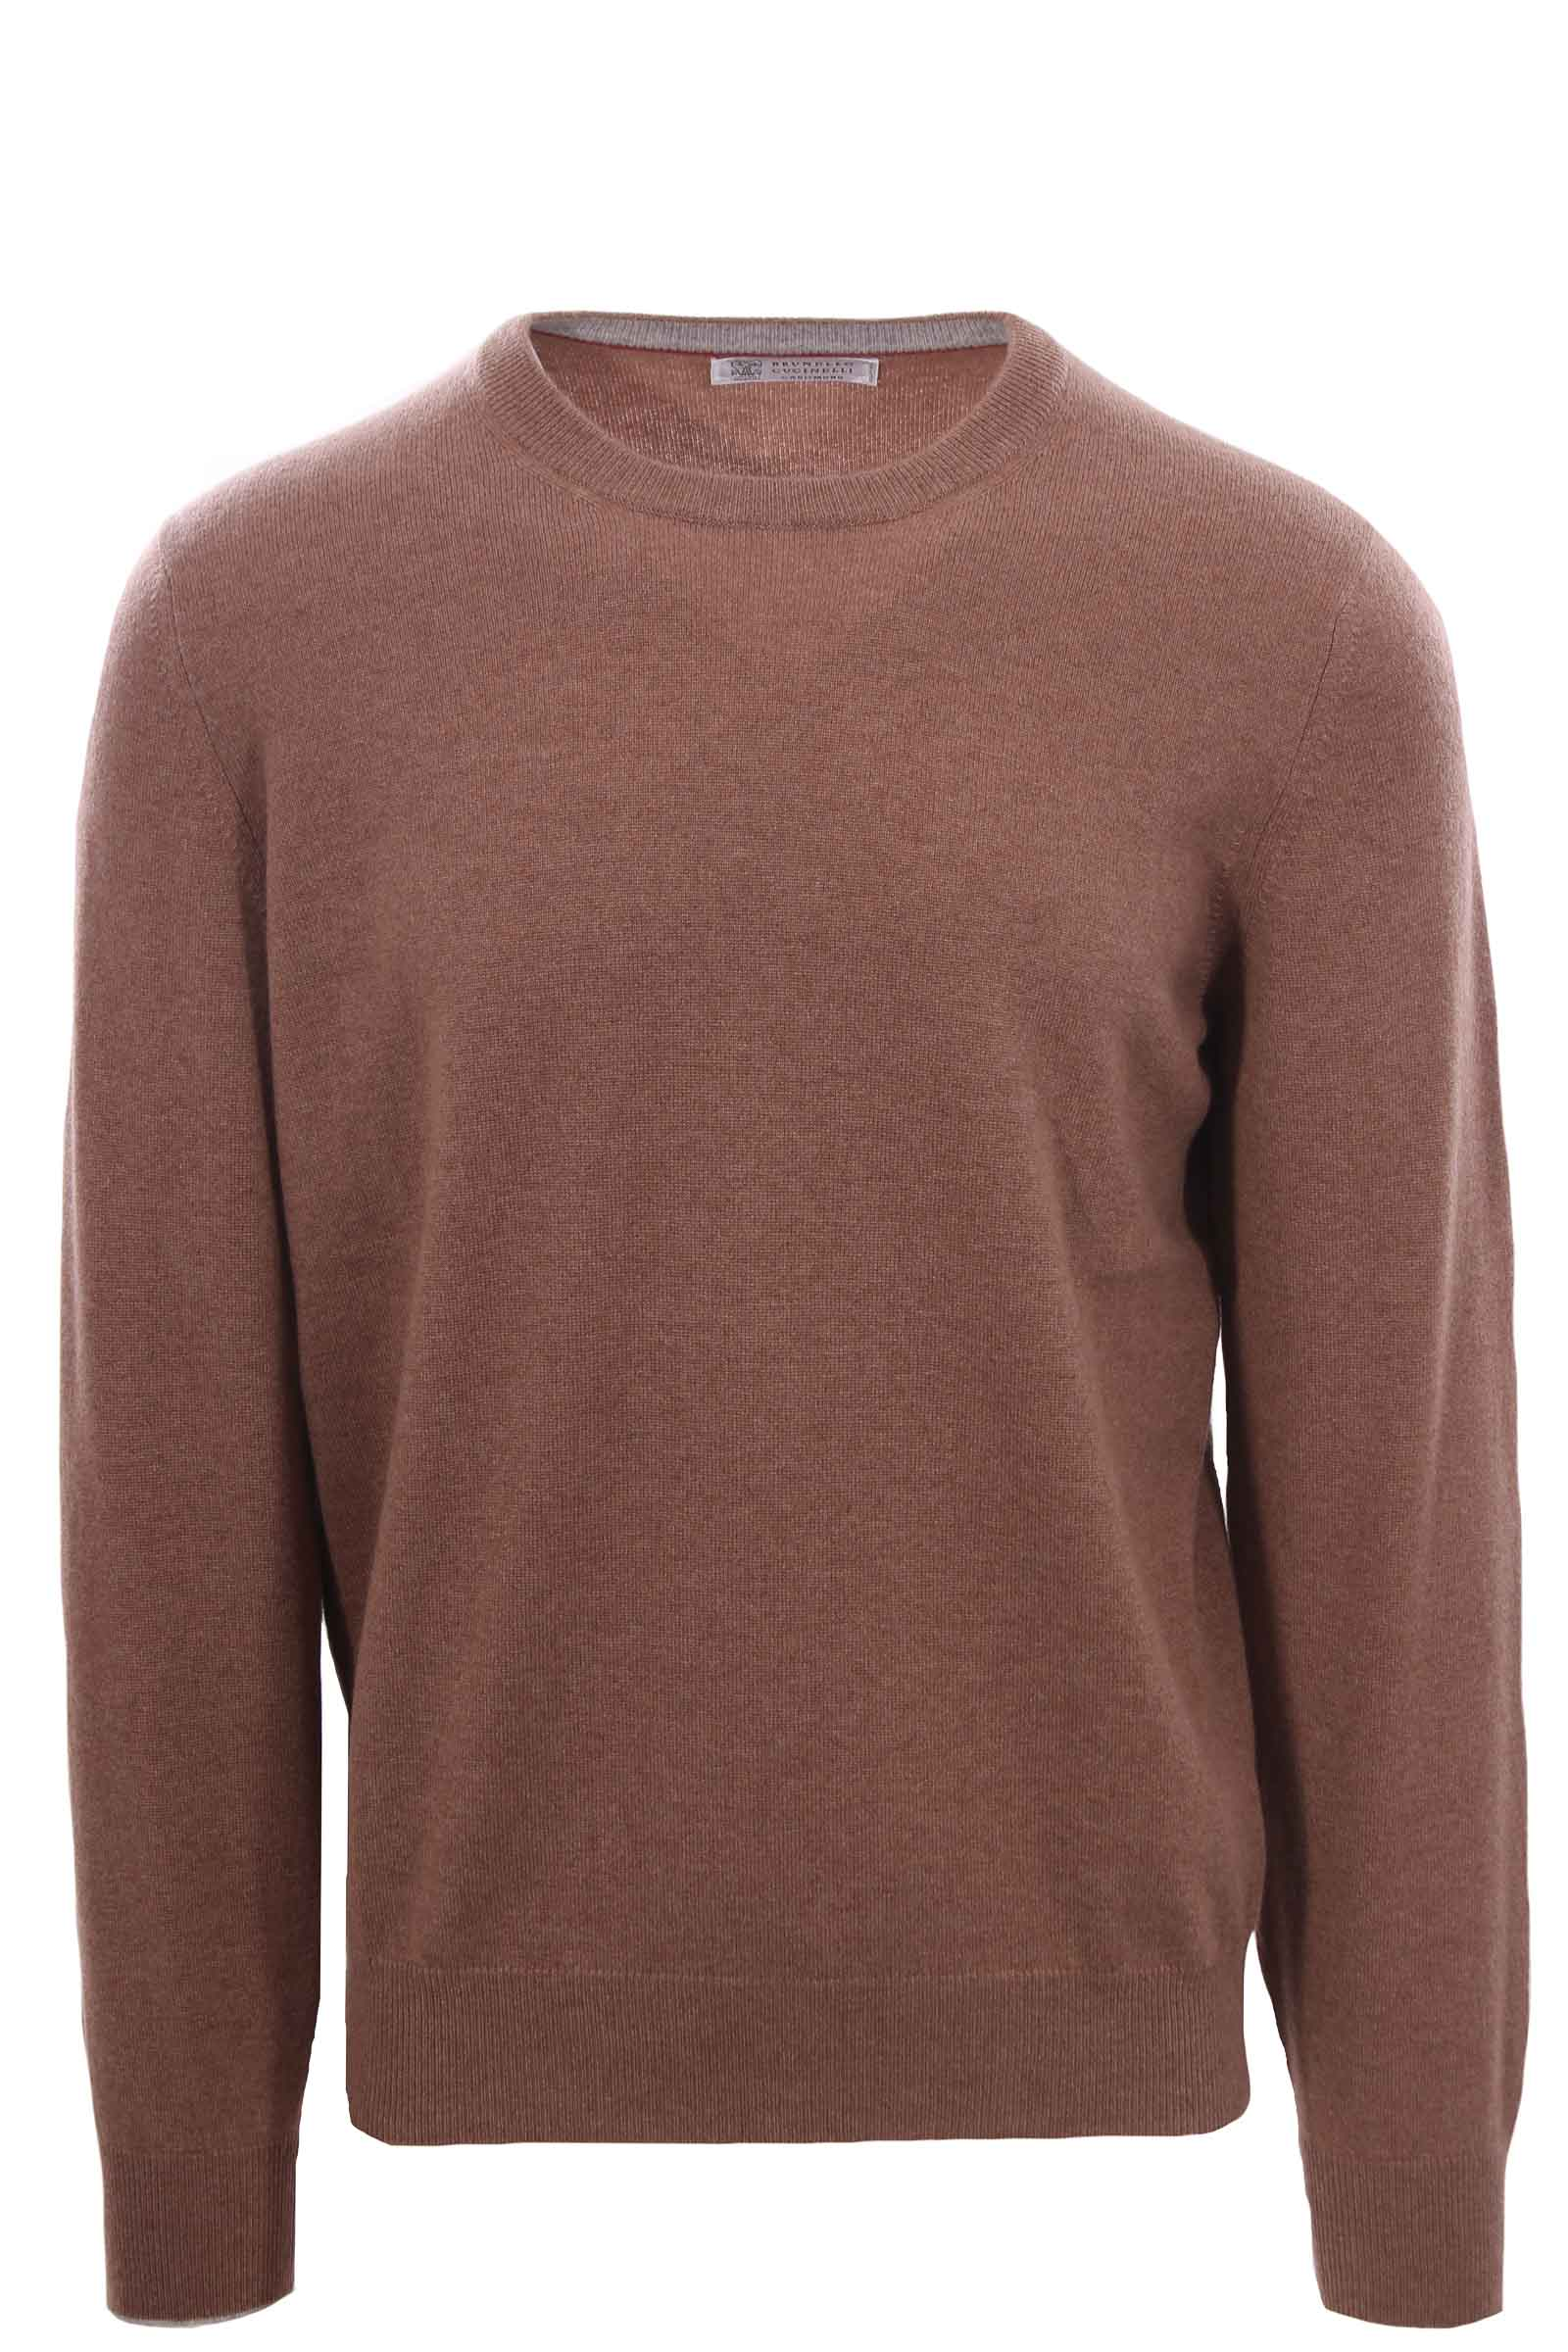 PULLOVER IN PURO CASHMERE  MARRONE M2200100CD723 BRUNELLO CUCINELLI | -1384759495 | M2200100CD723